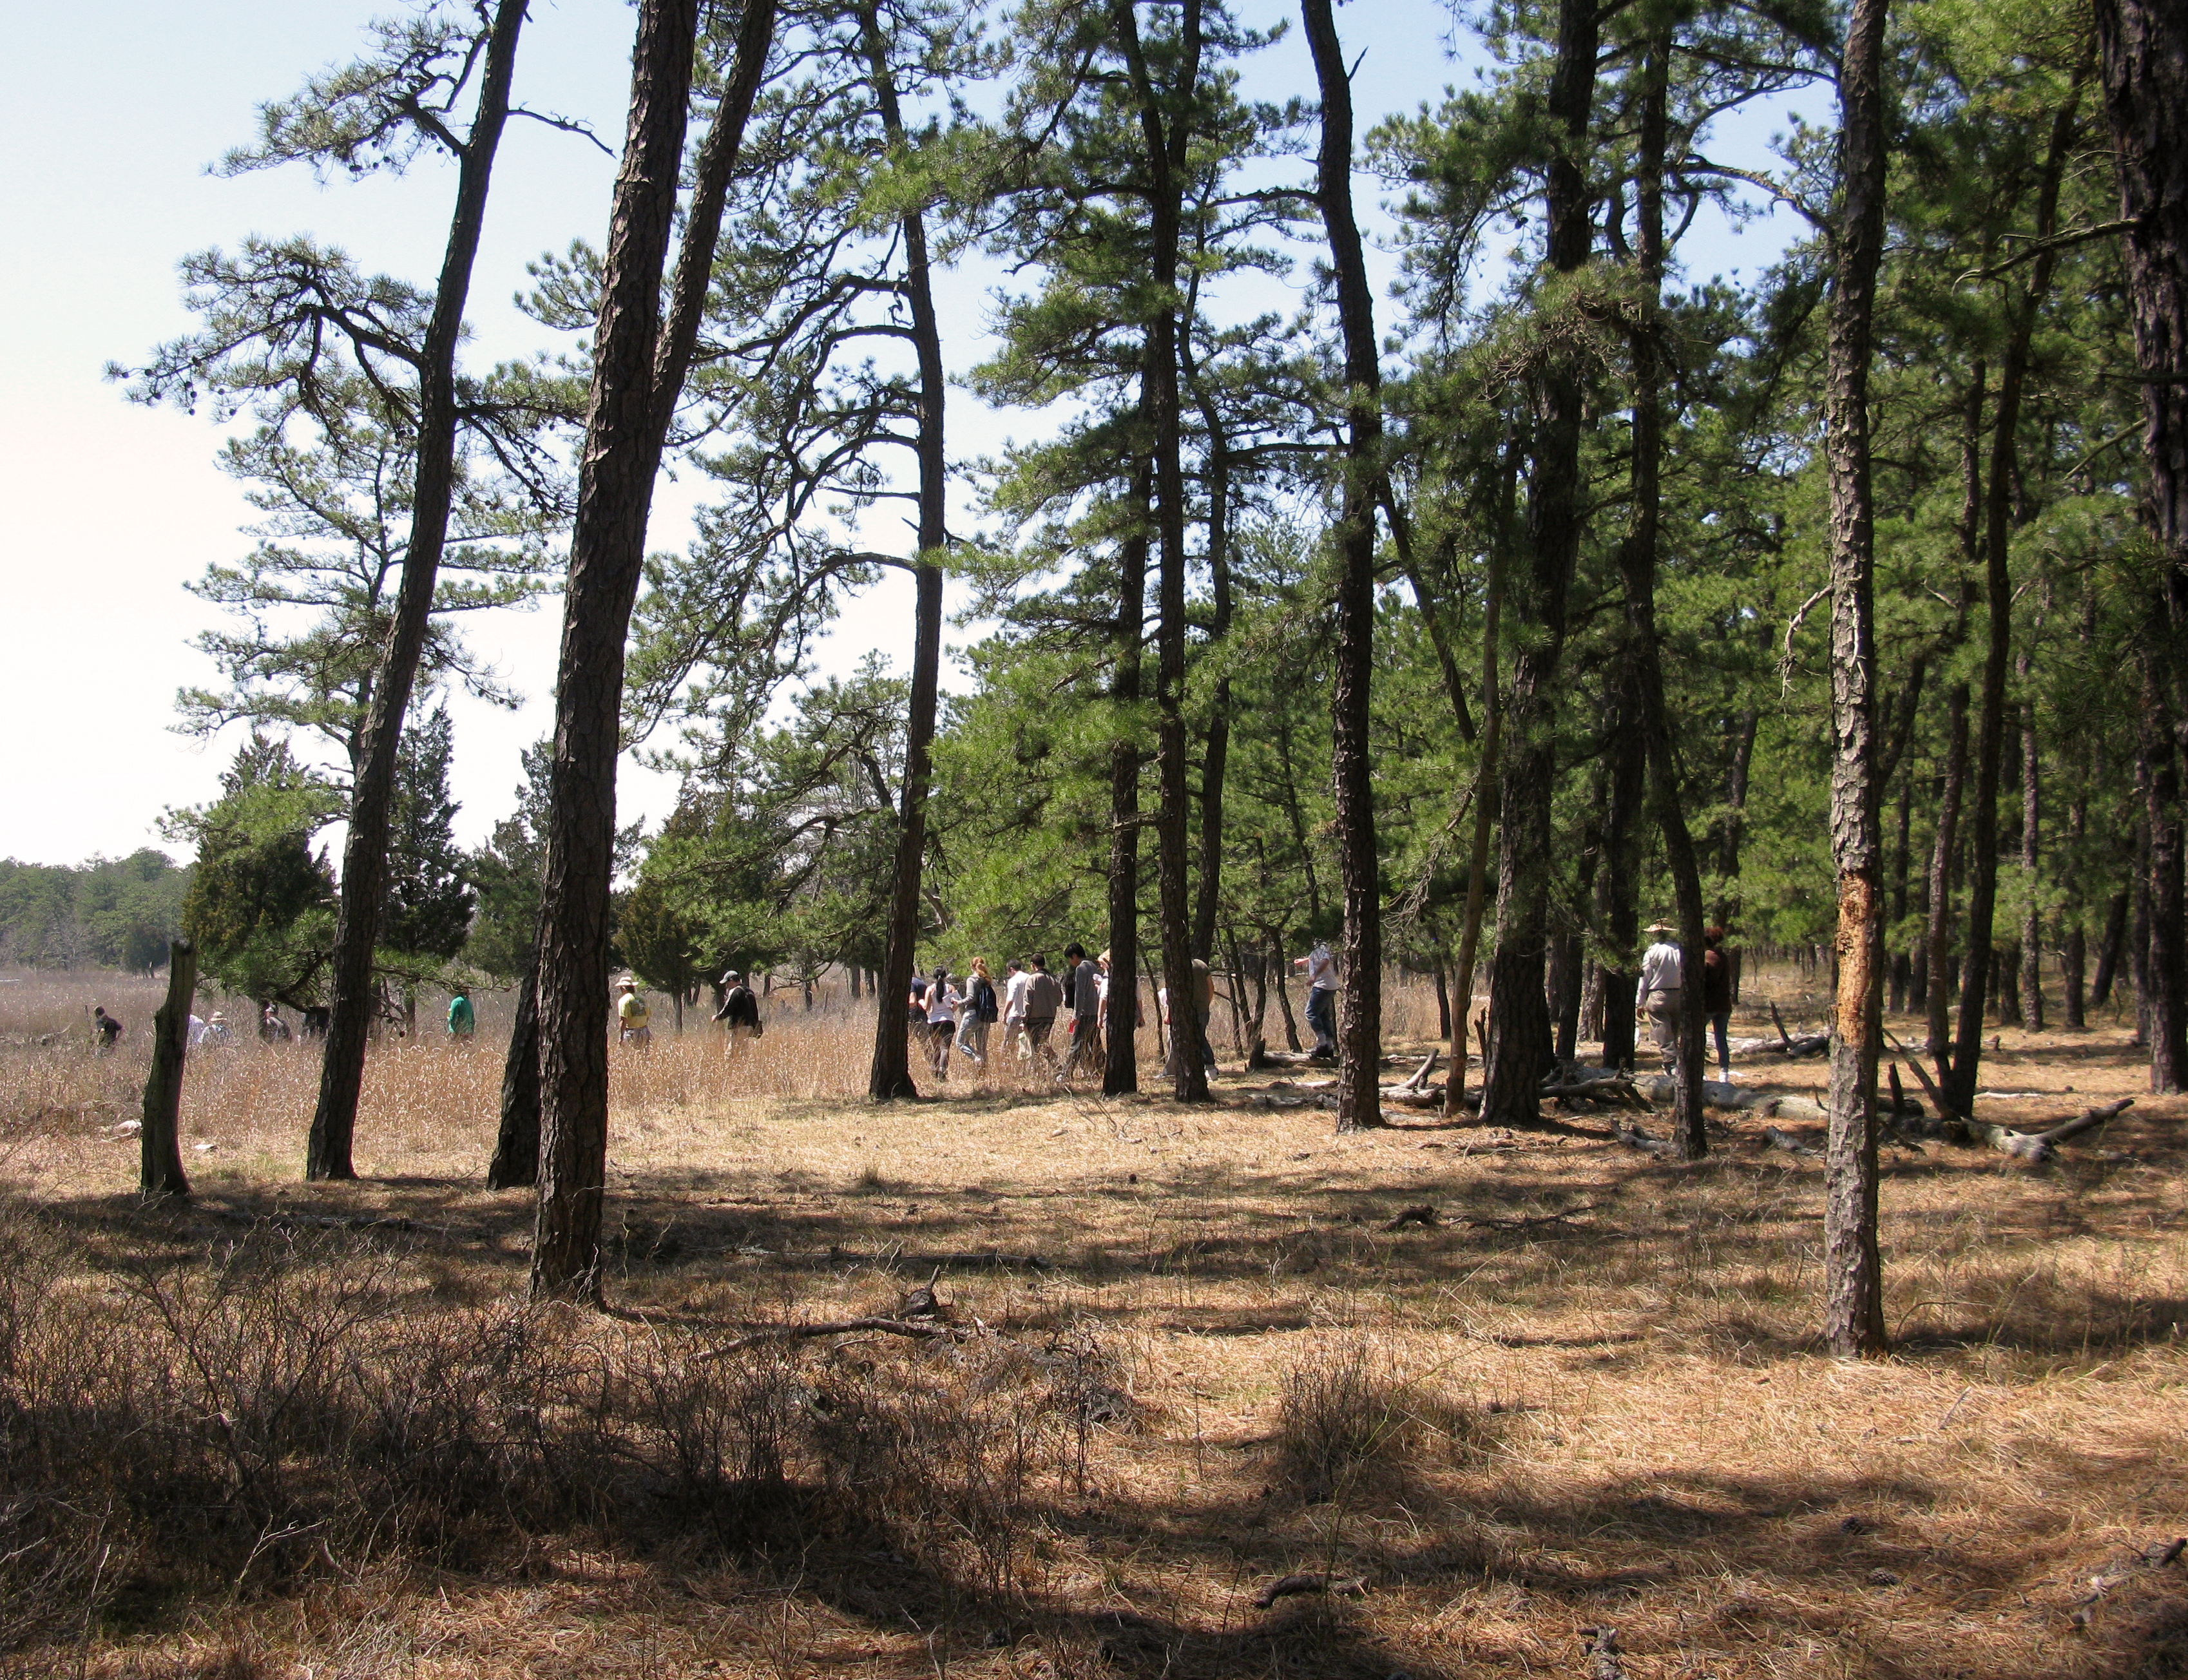 People hiking together in the Long Island Pine Barrens